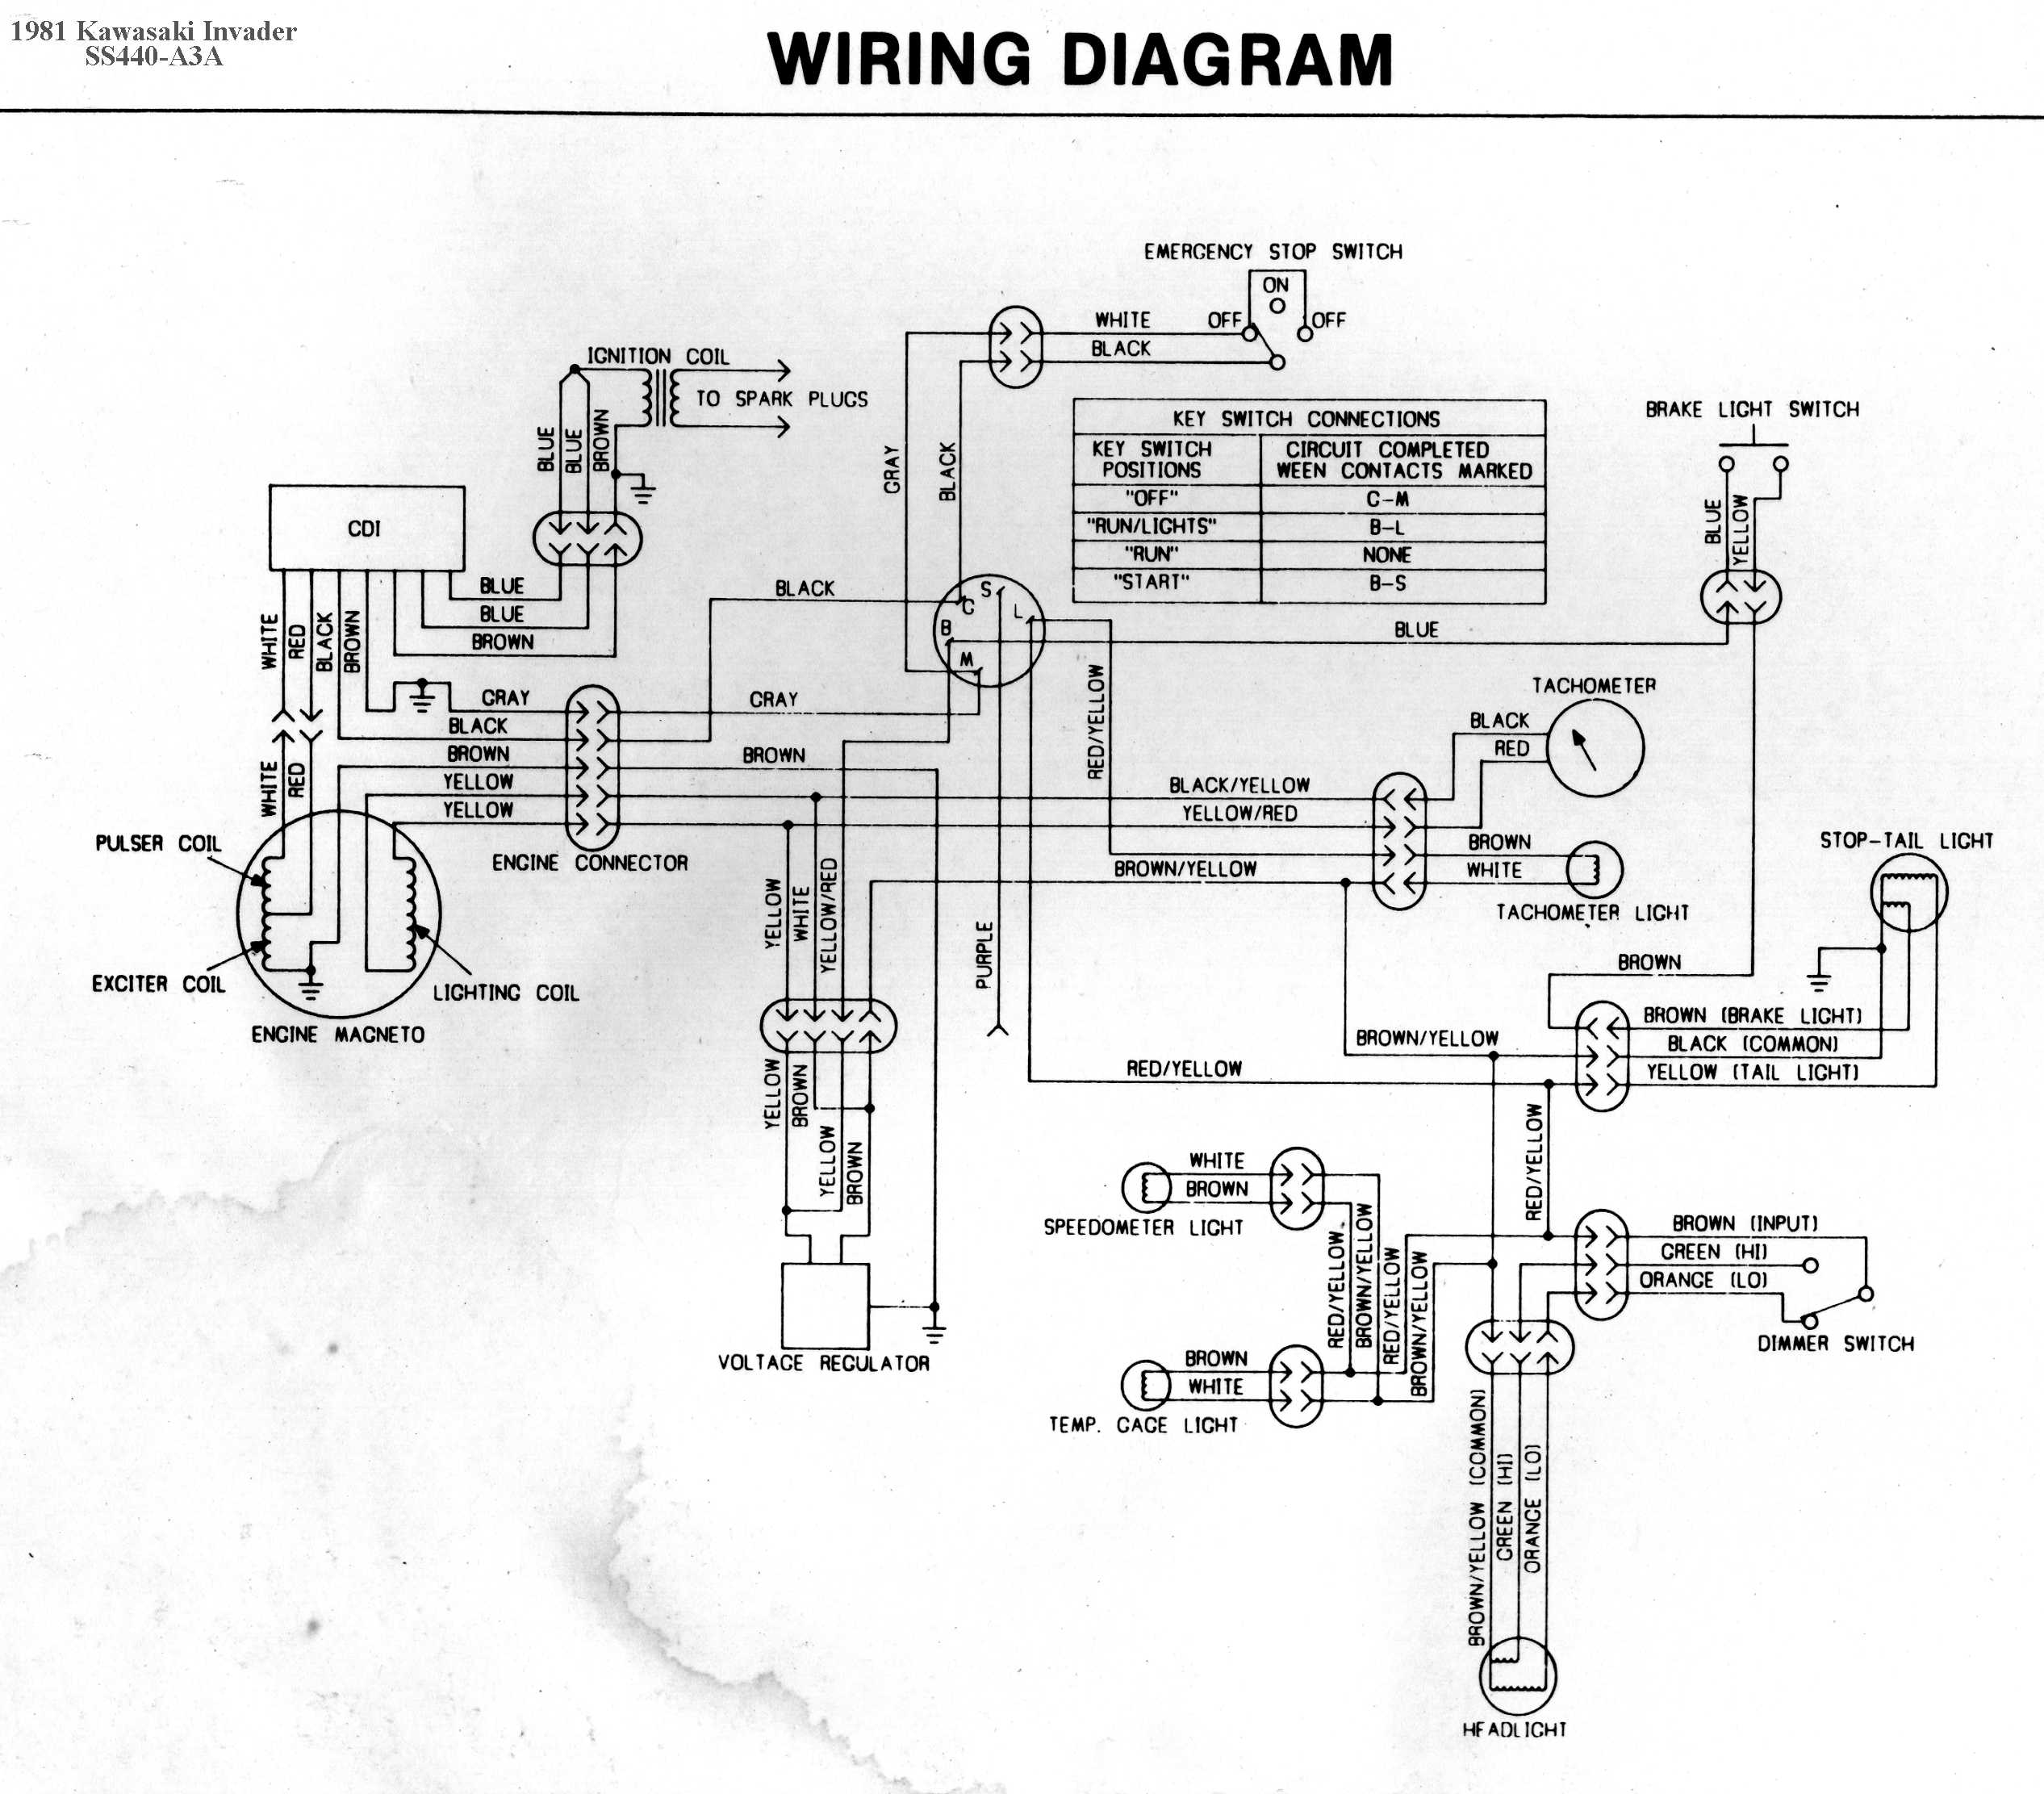 ss440a3a kawasaki invader snowmobile wiring diagrams 1980 Kawasaki KZ750 Wiring-Diagram at webbmarketing.co